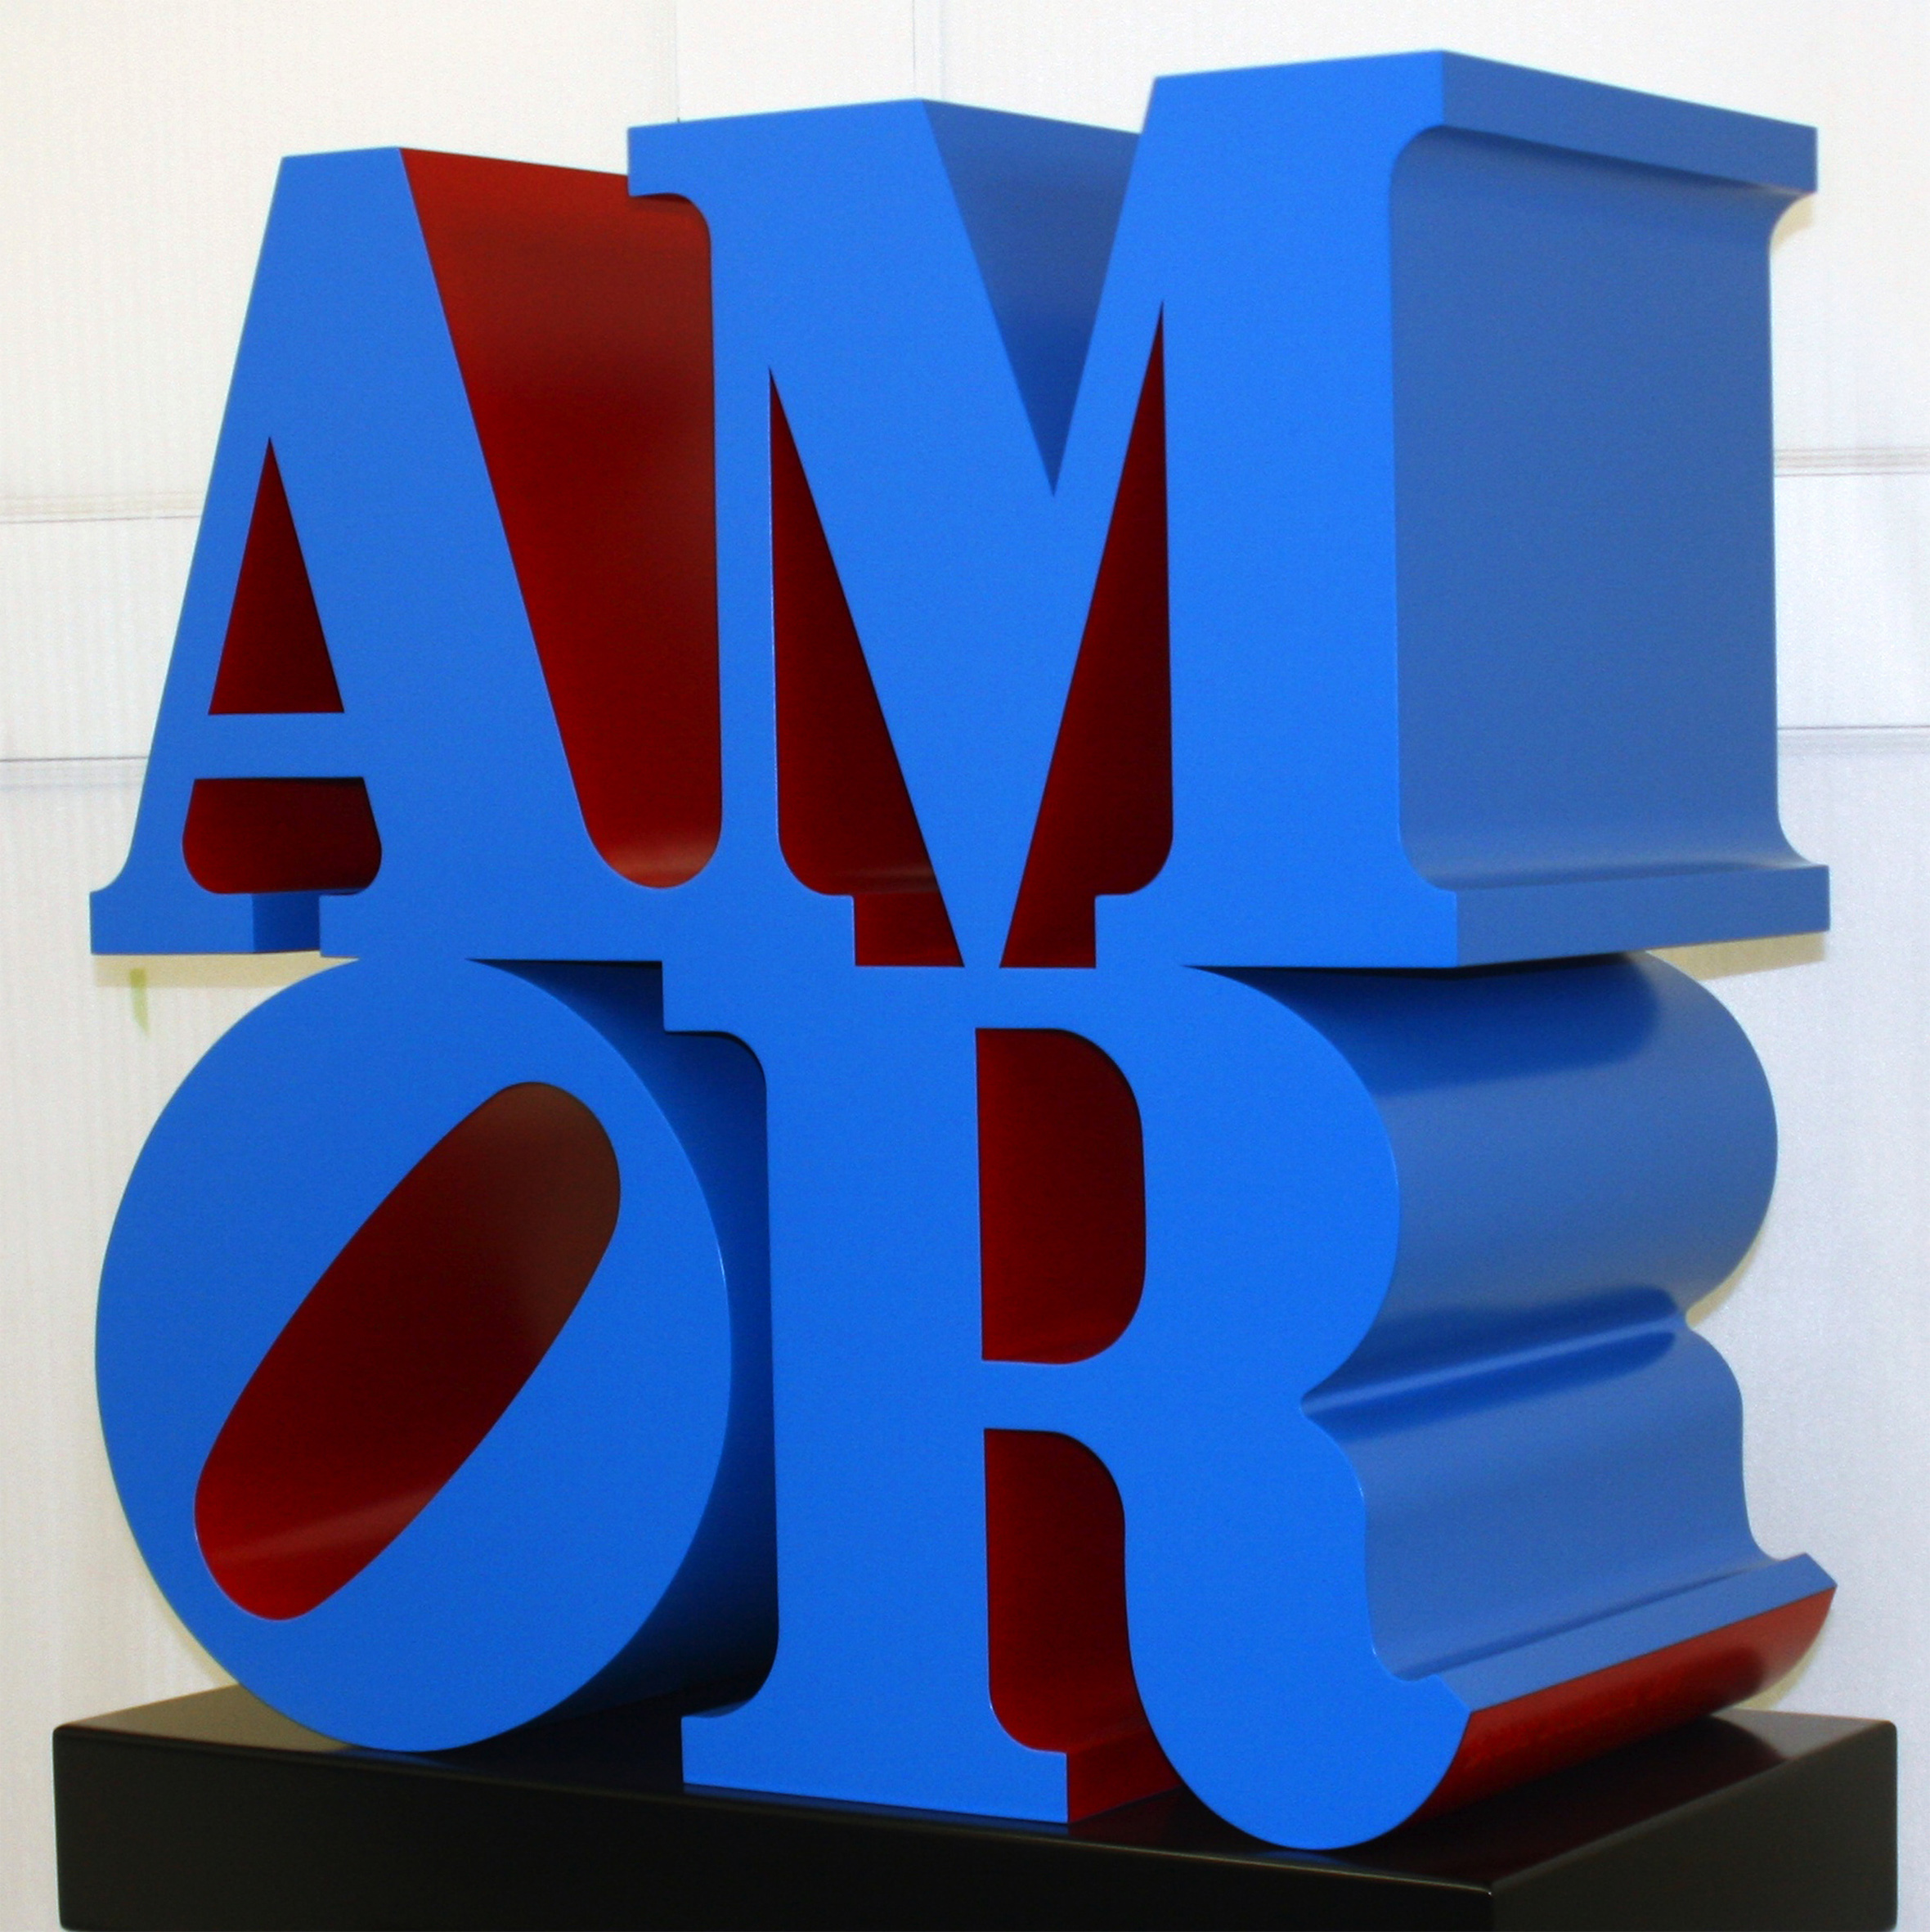 Robert Indiana Amor 1998 Scultura, alluminio policromo (blue and red), 104x96,5x50,8 cm. Ed. 3/6 Courtesy: Galleria d'Arte Maggiore, G.A.M., Bologna, Italia © Robert Indiana by SIAE 2016